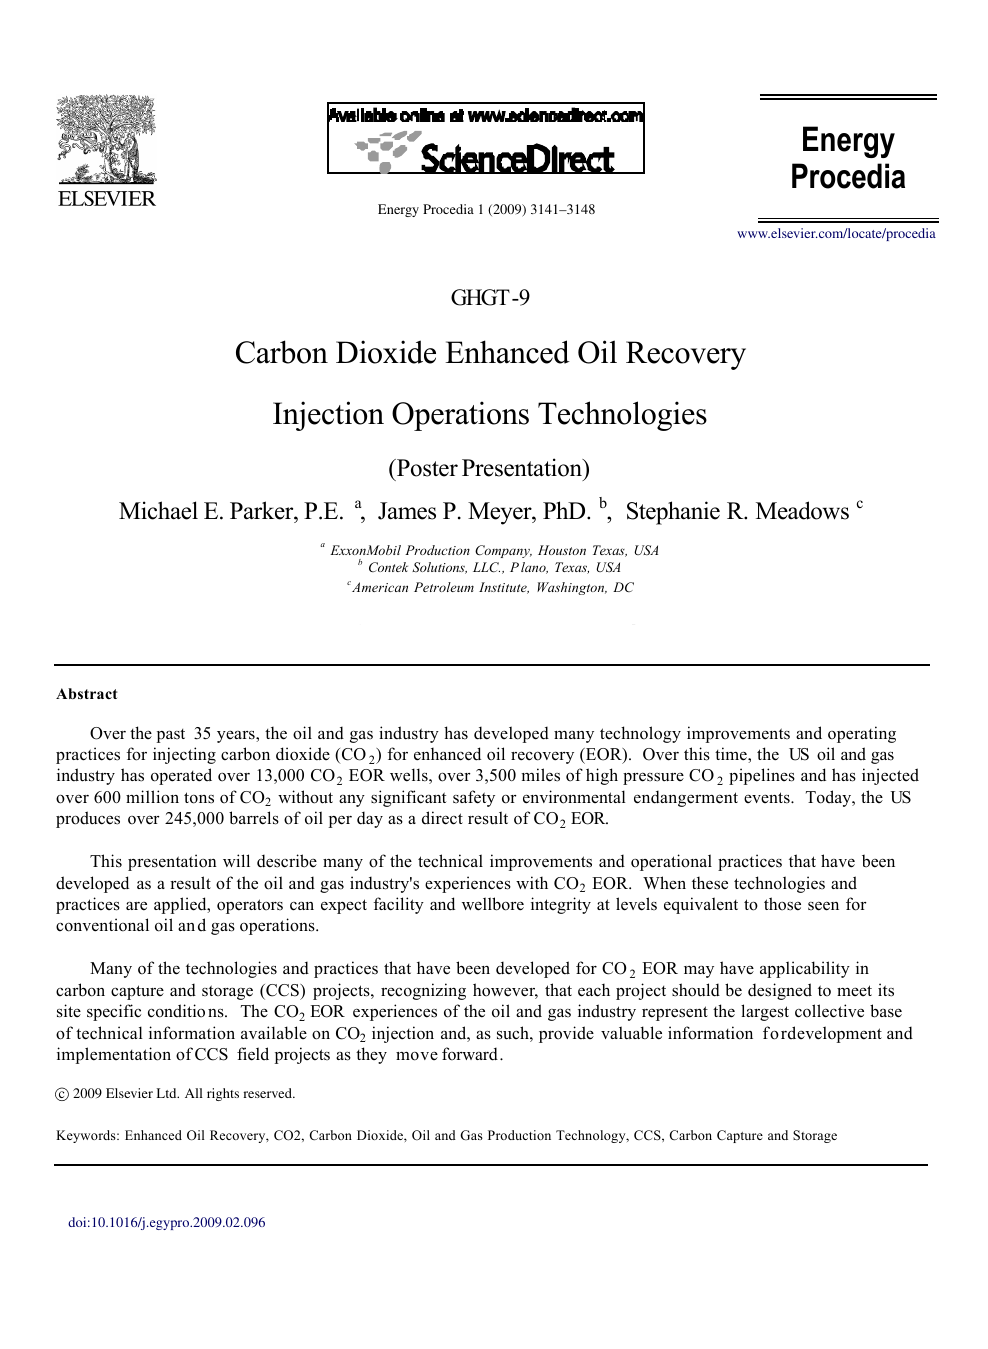 Carbon Dioxide Enhanced Oil Recovery Injection Operations